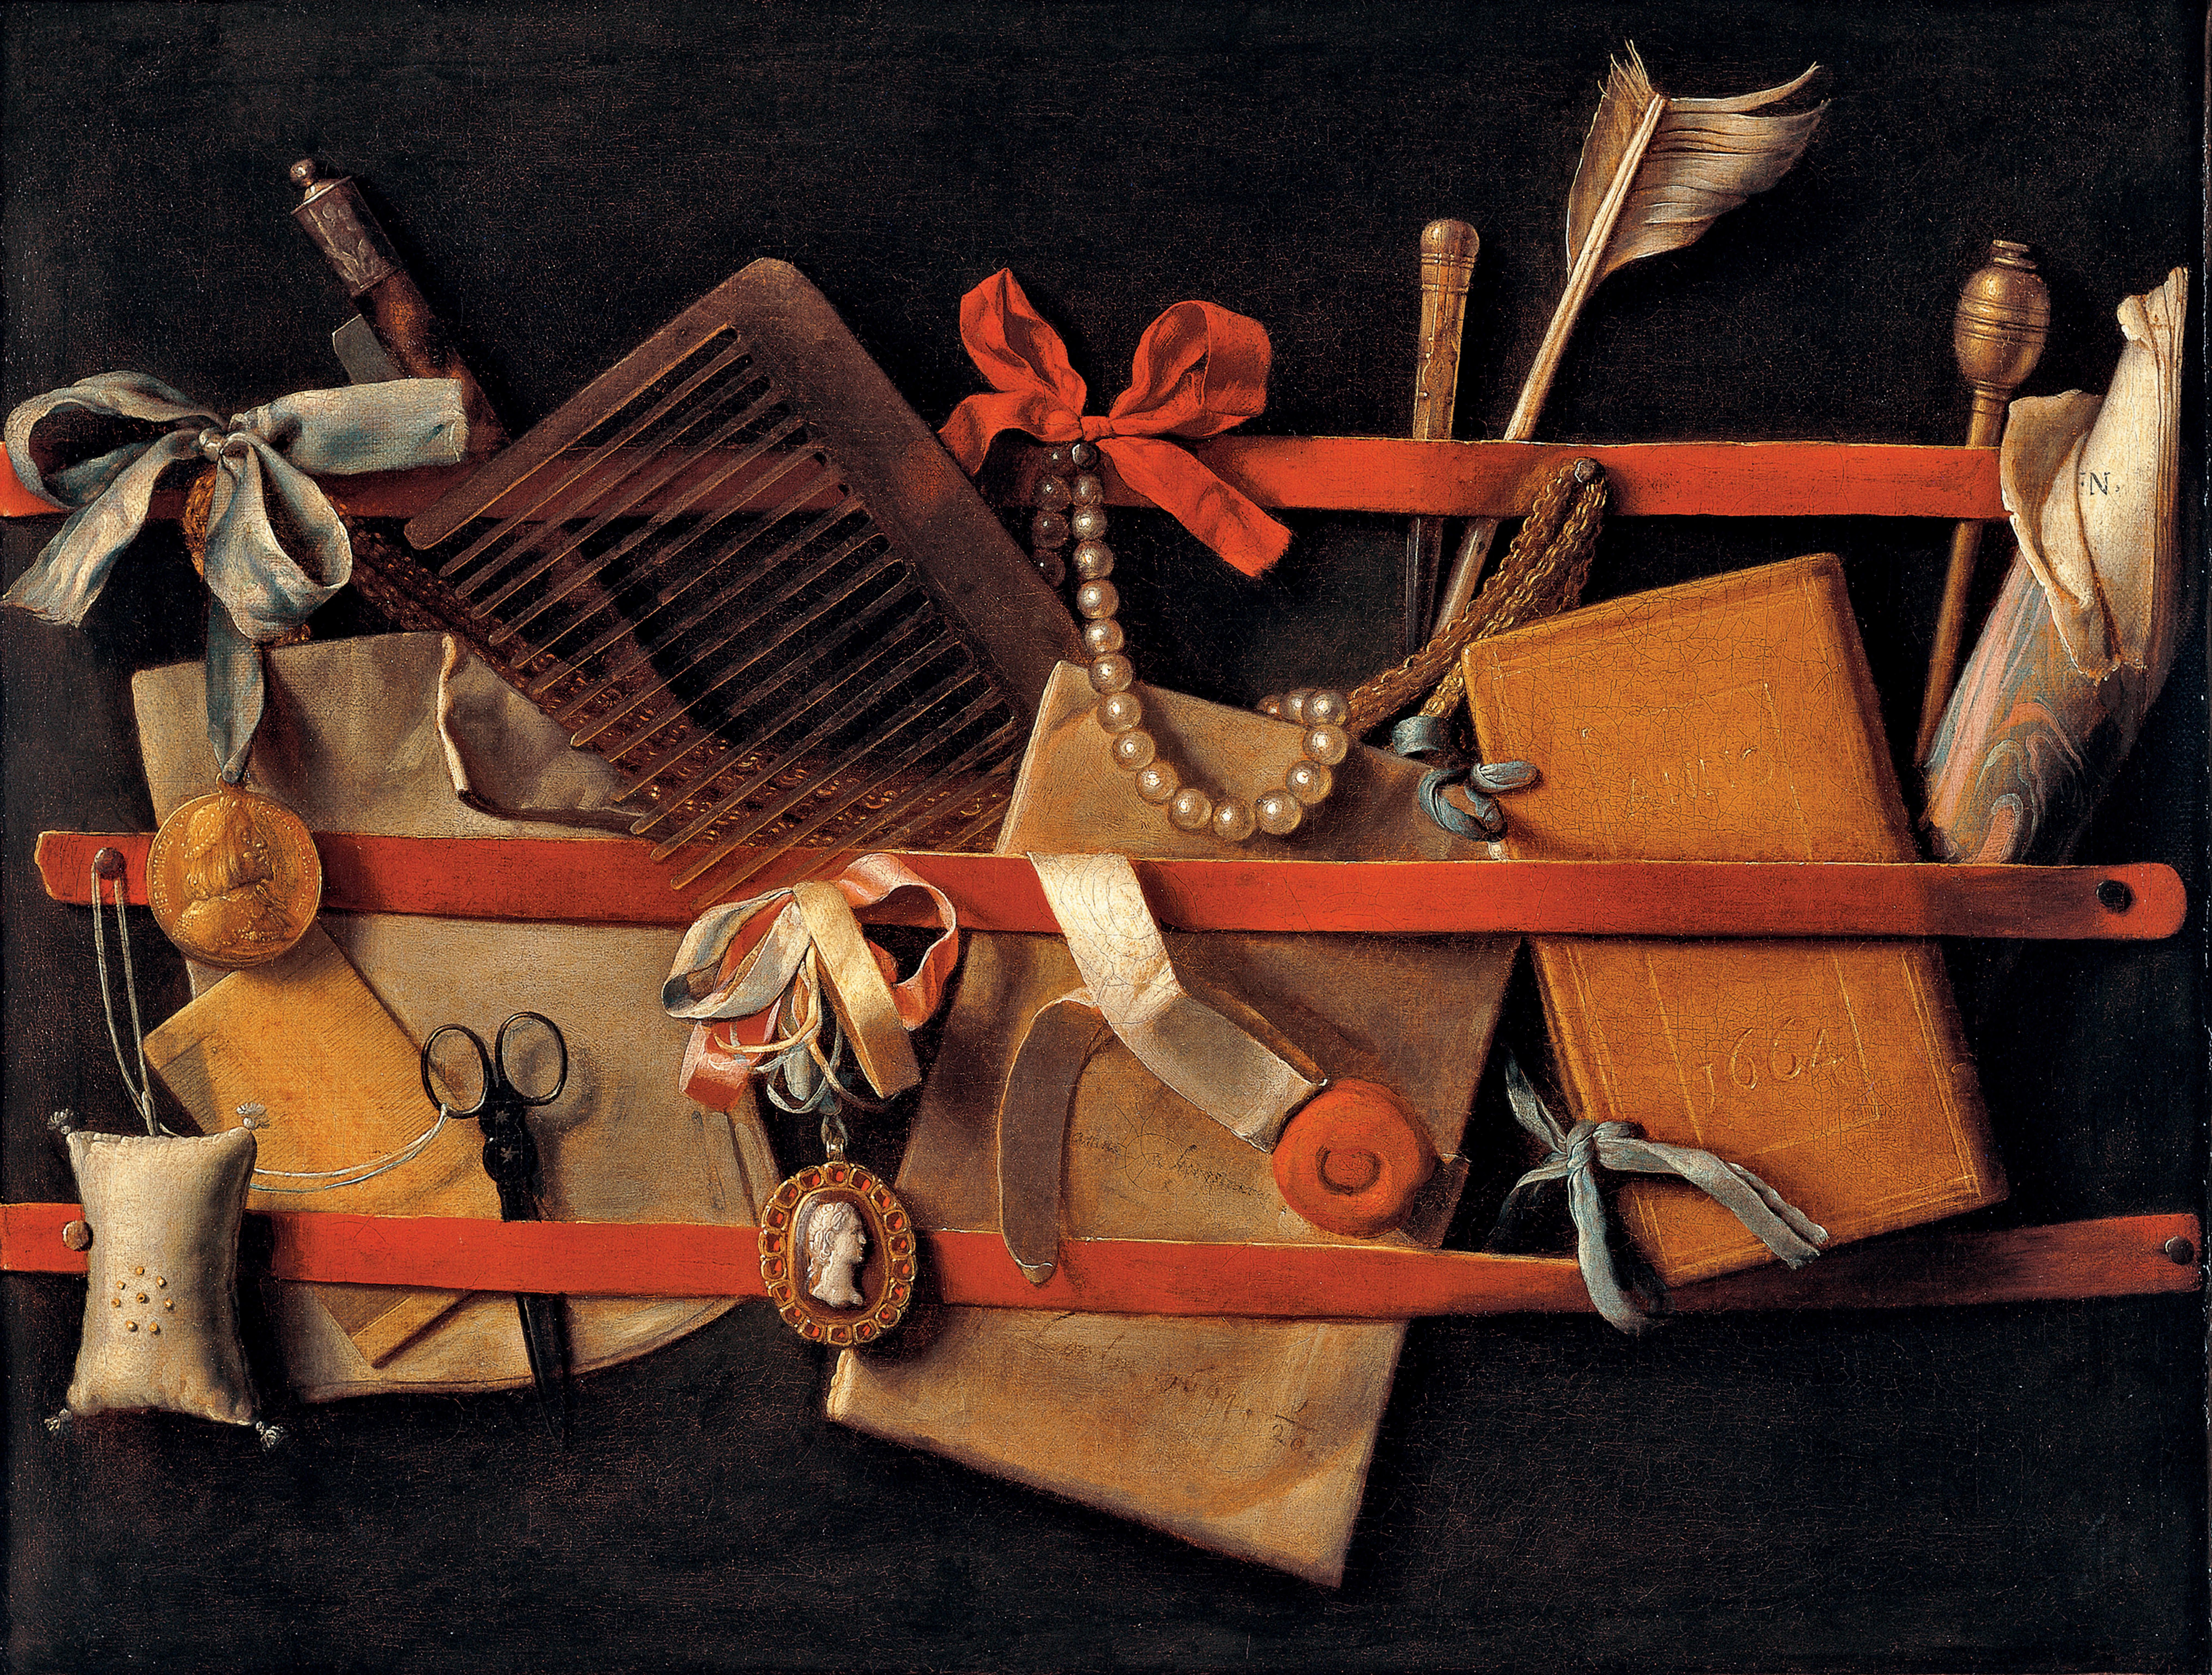 Realistic painting of notebooks, pearls, a comb, a feather, and other ephemera